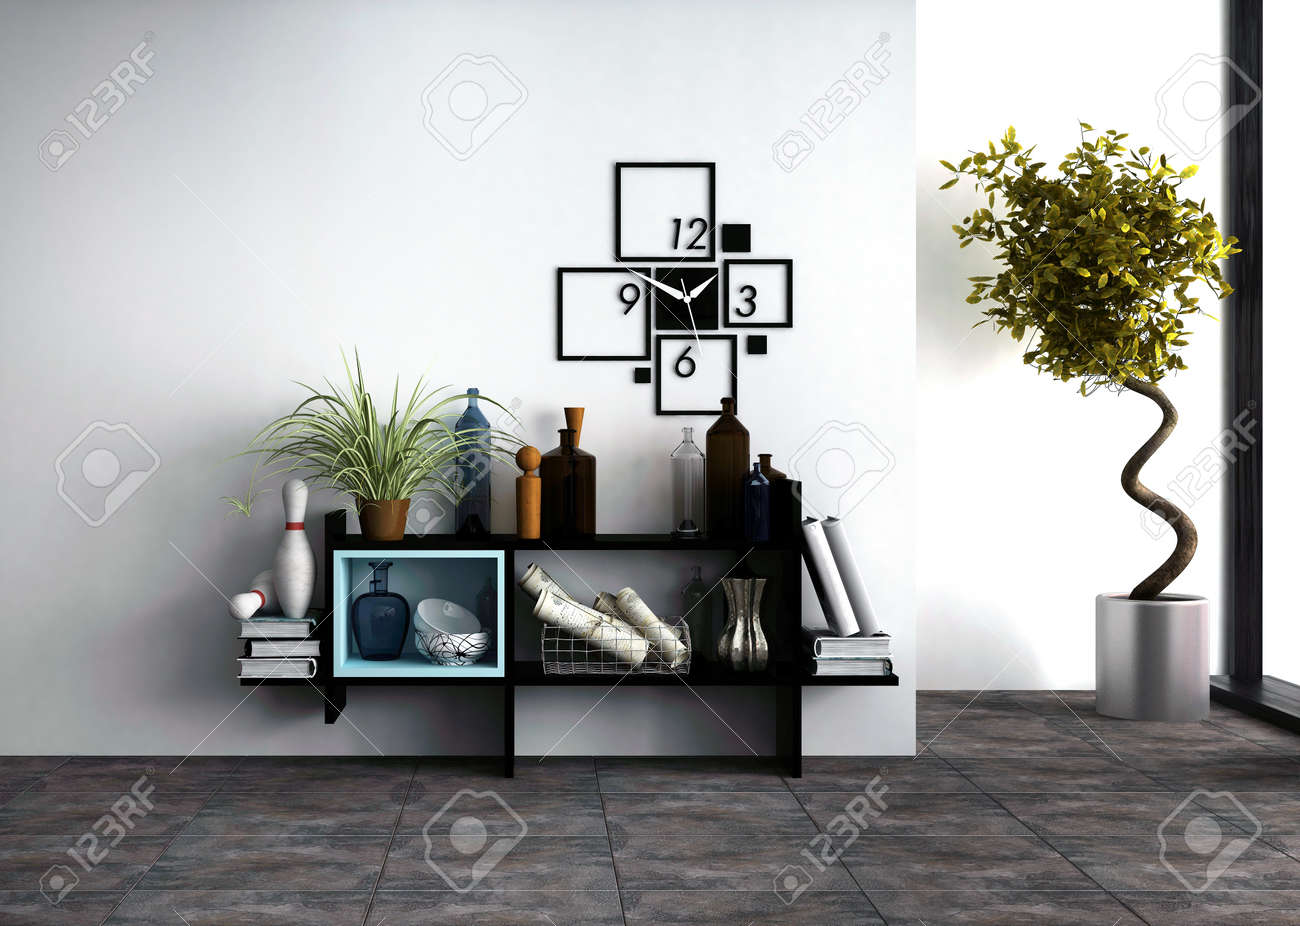 wall-mounted shelves with personal effects and a designer clock